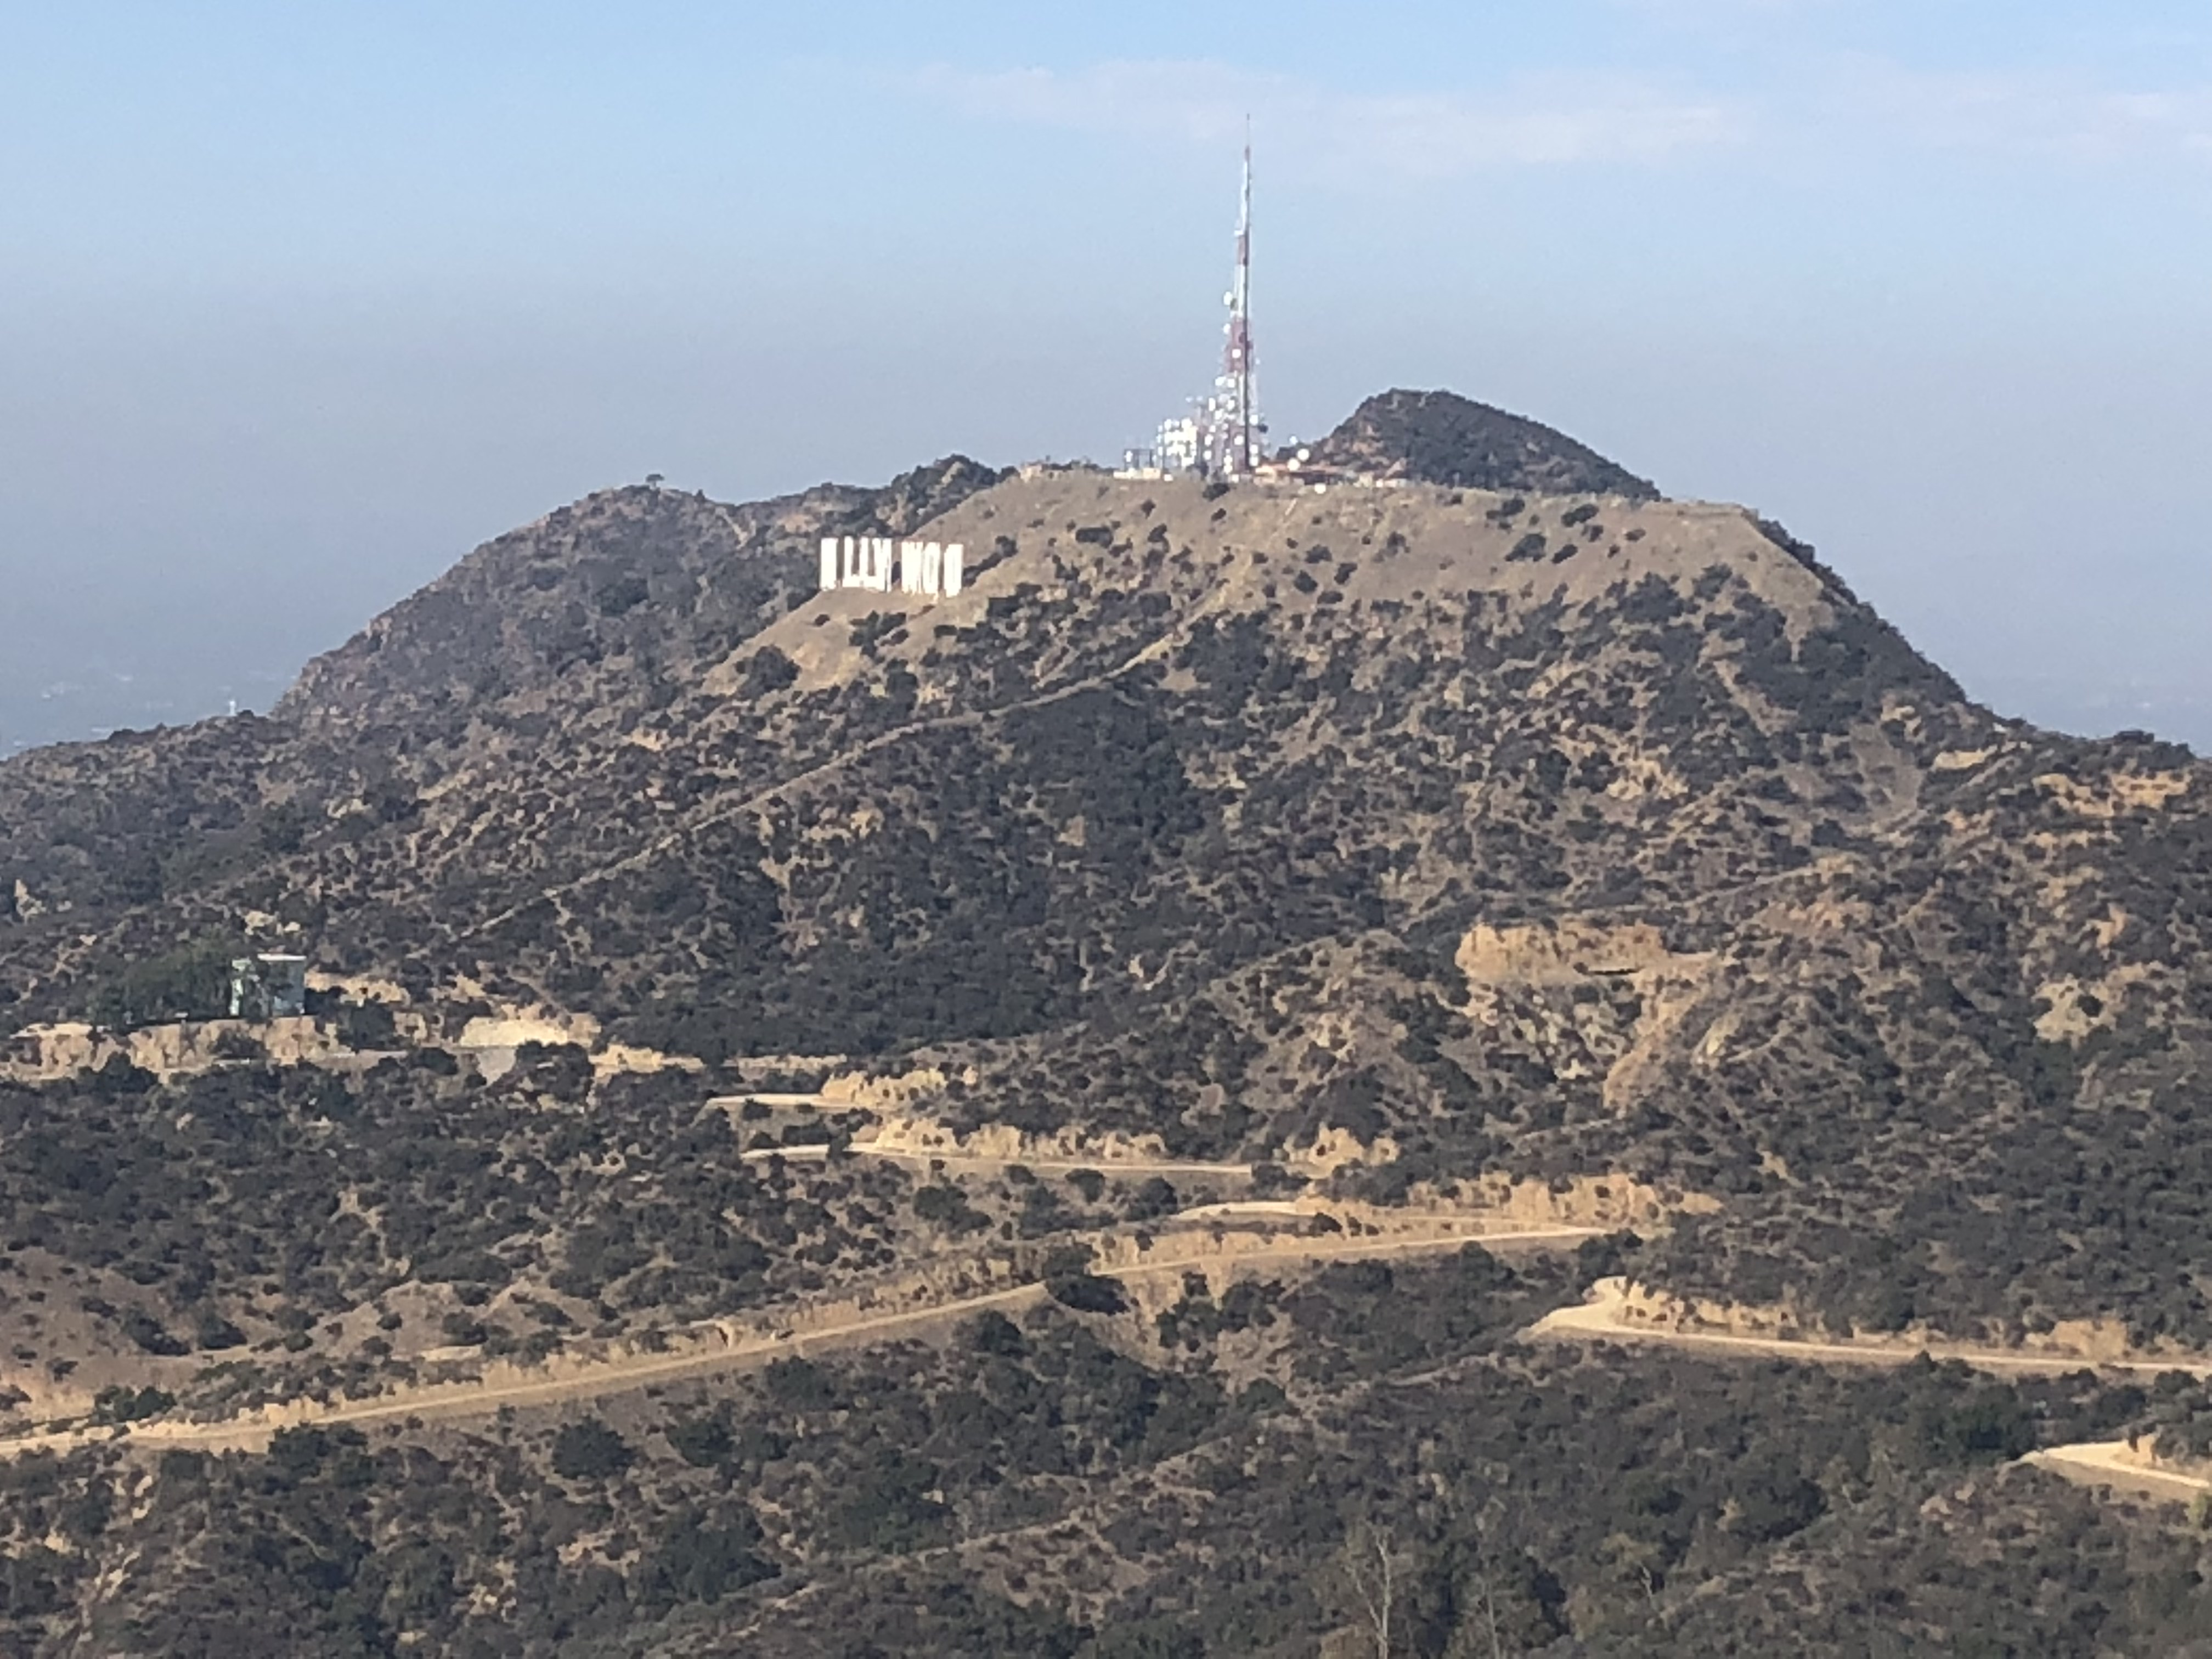 Hollywood sign from Mt. Hollywood